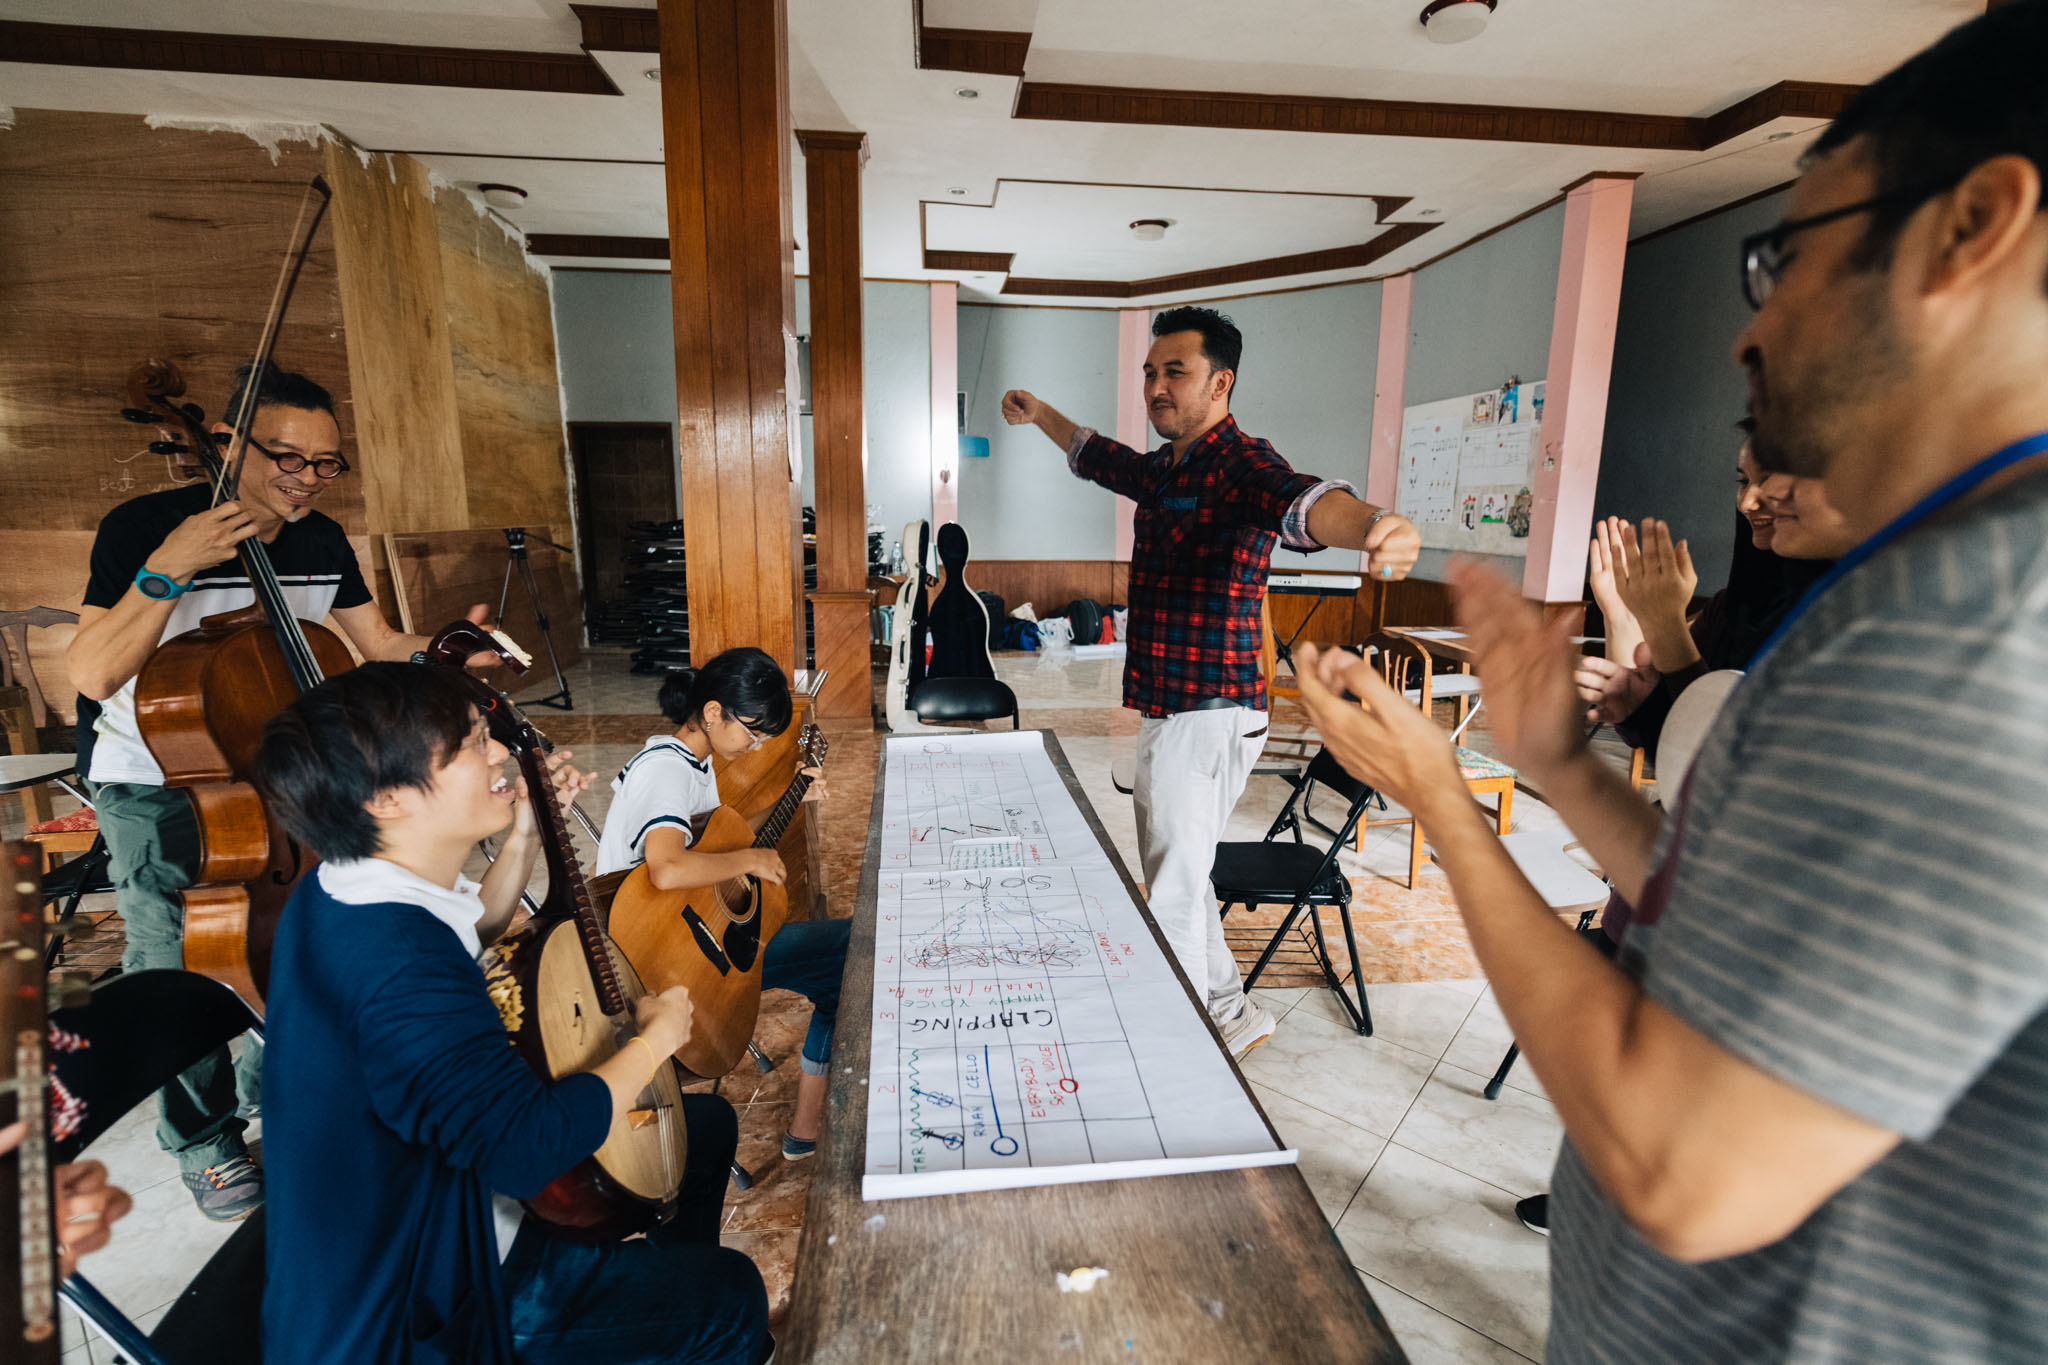 Working with the Singapore International Foundation and musicians from the Bandung Philharmonic, to empower Afghan refugees living in Indonesia to express themselves creatively through music (frontmost on left). Photo by Singapore International Foundation.